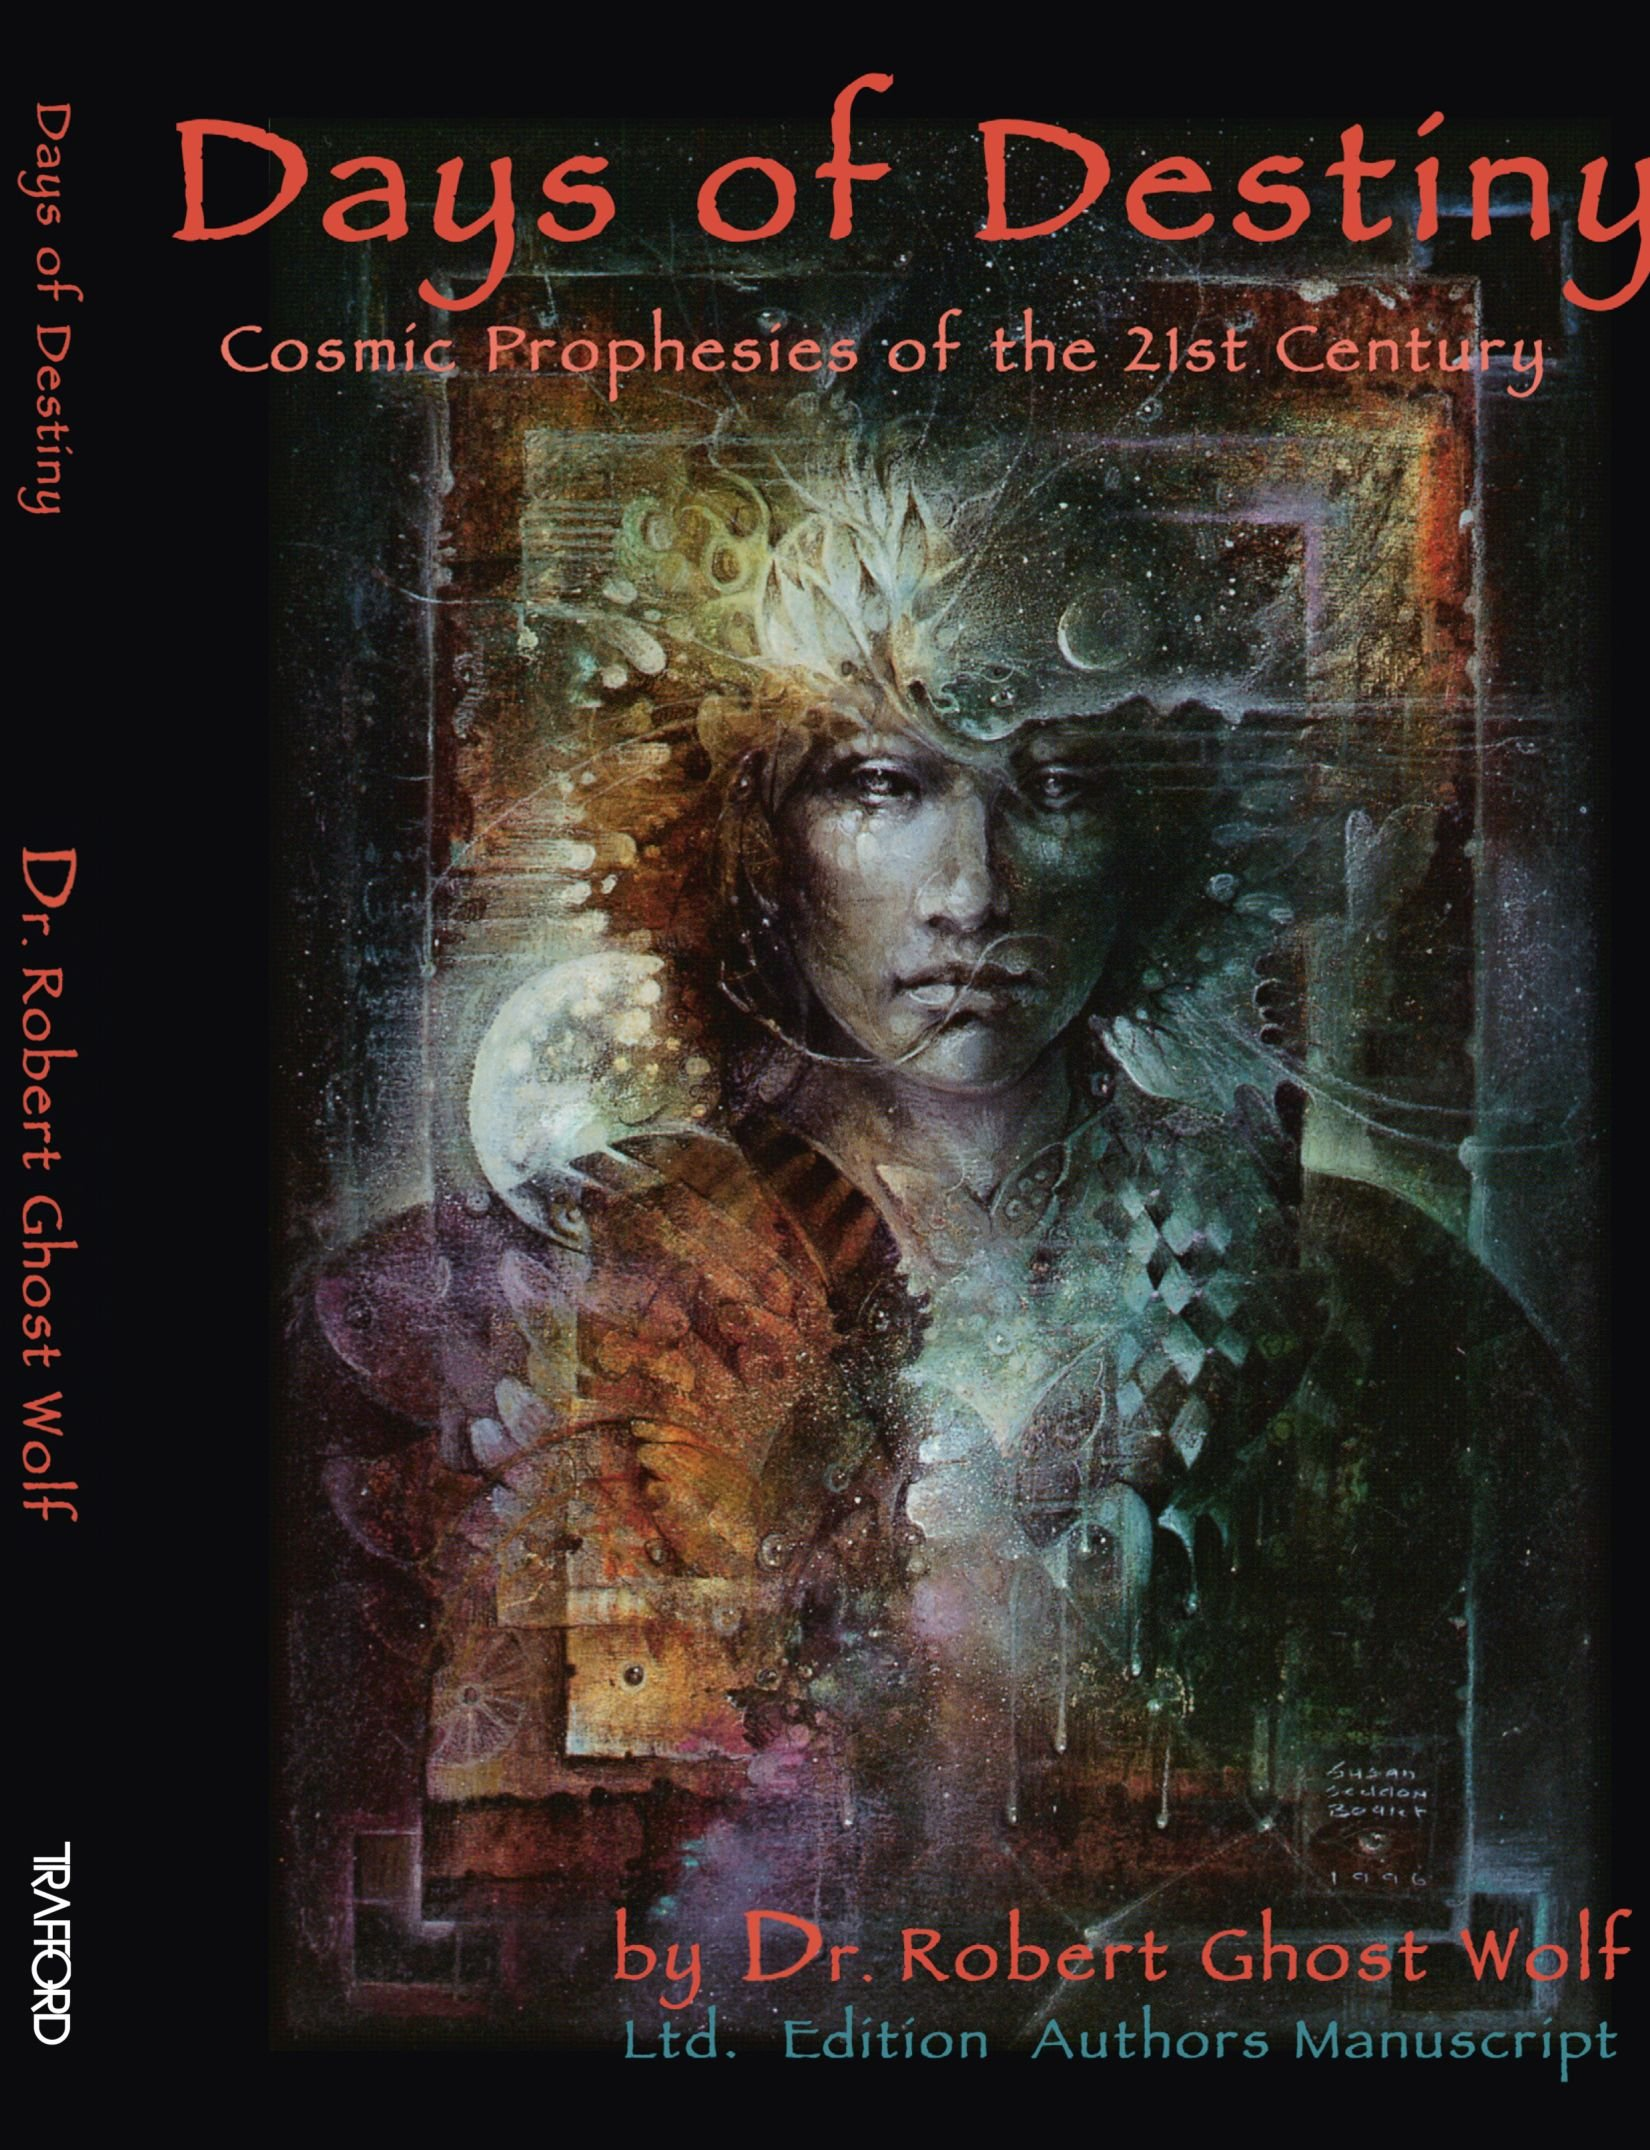 Amazon.com: Days of Destiny: Cosmic Prophecies for the 21st Century  (9781412007269): Dr. Robert Ghost Wolf: Books